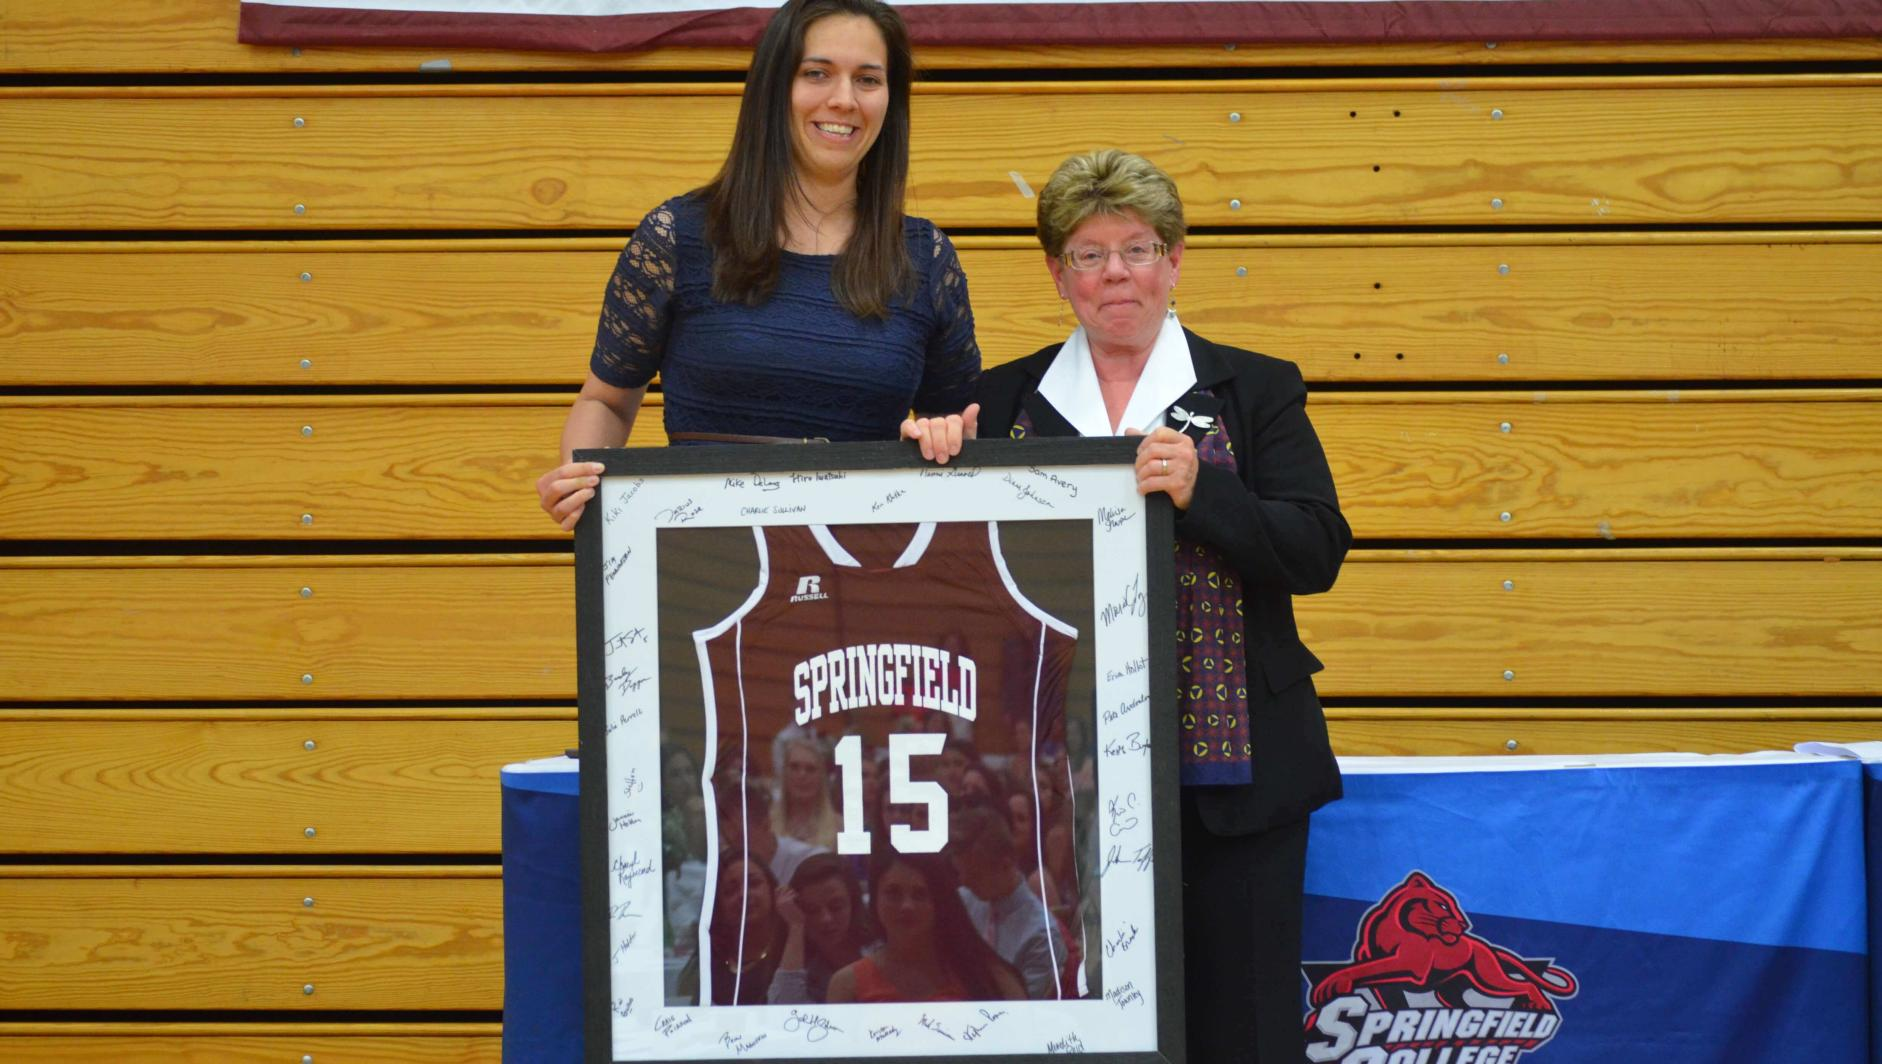 Samantha Avery presents a jersey to a coach.